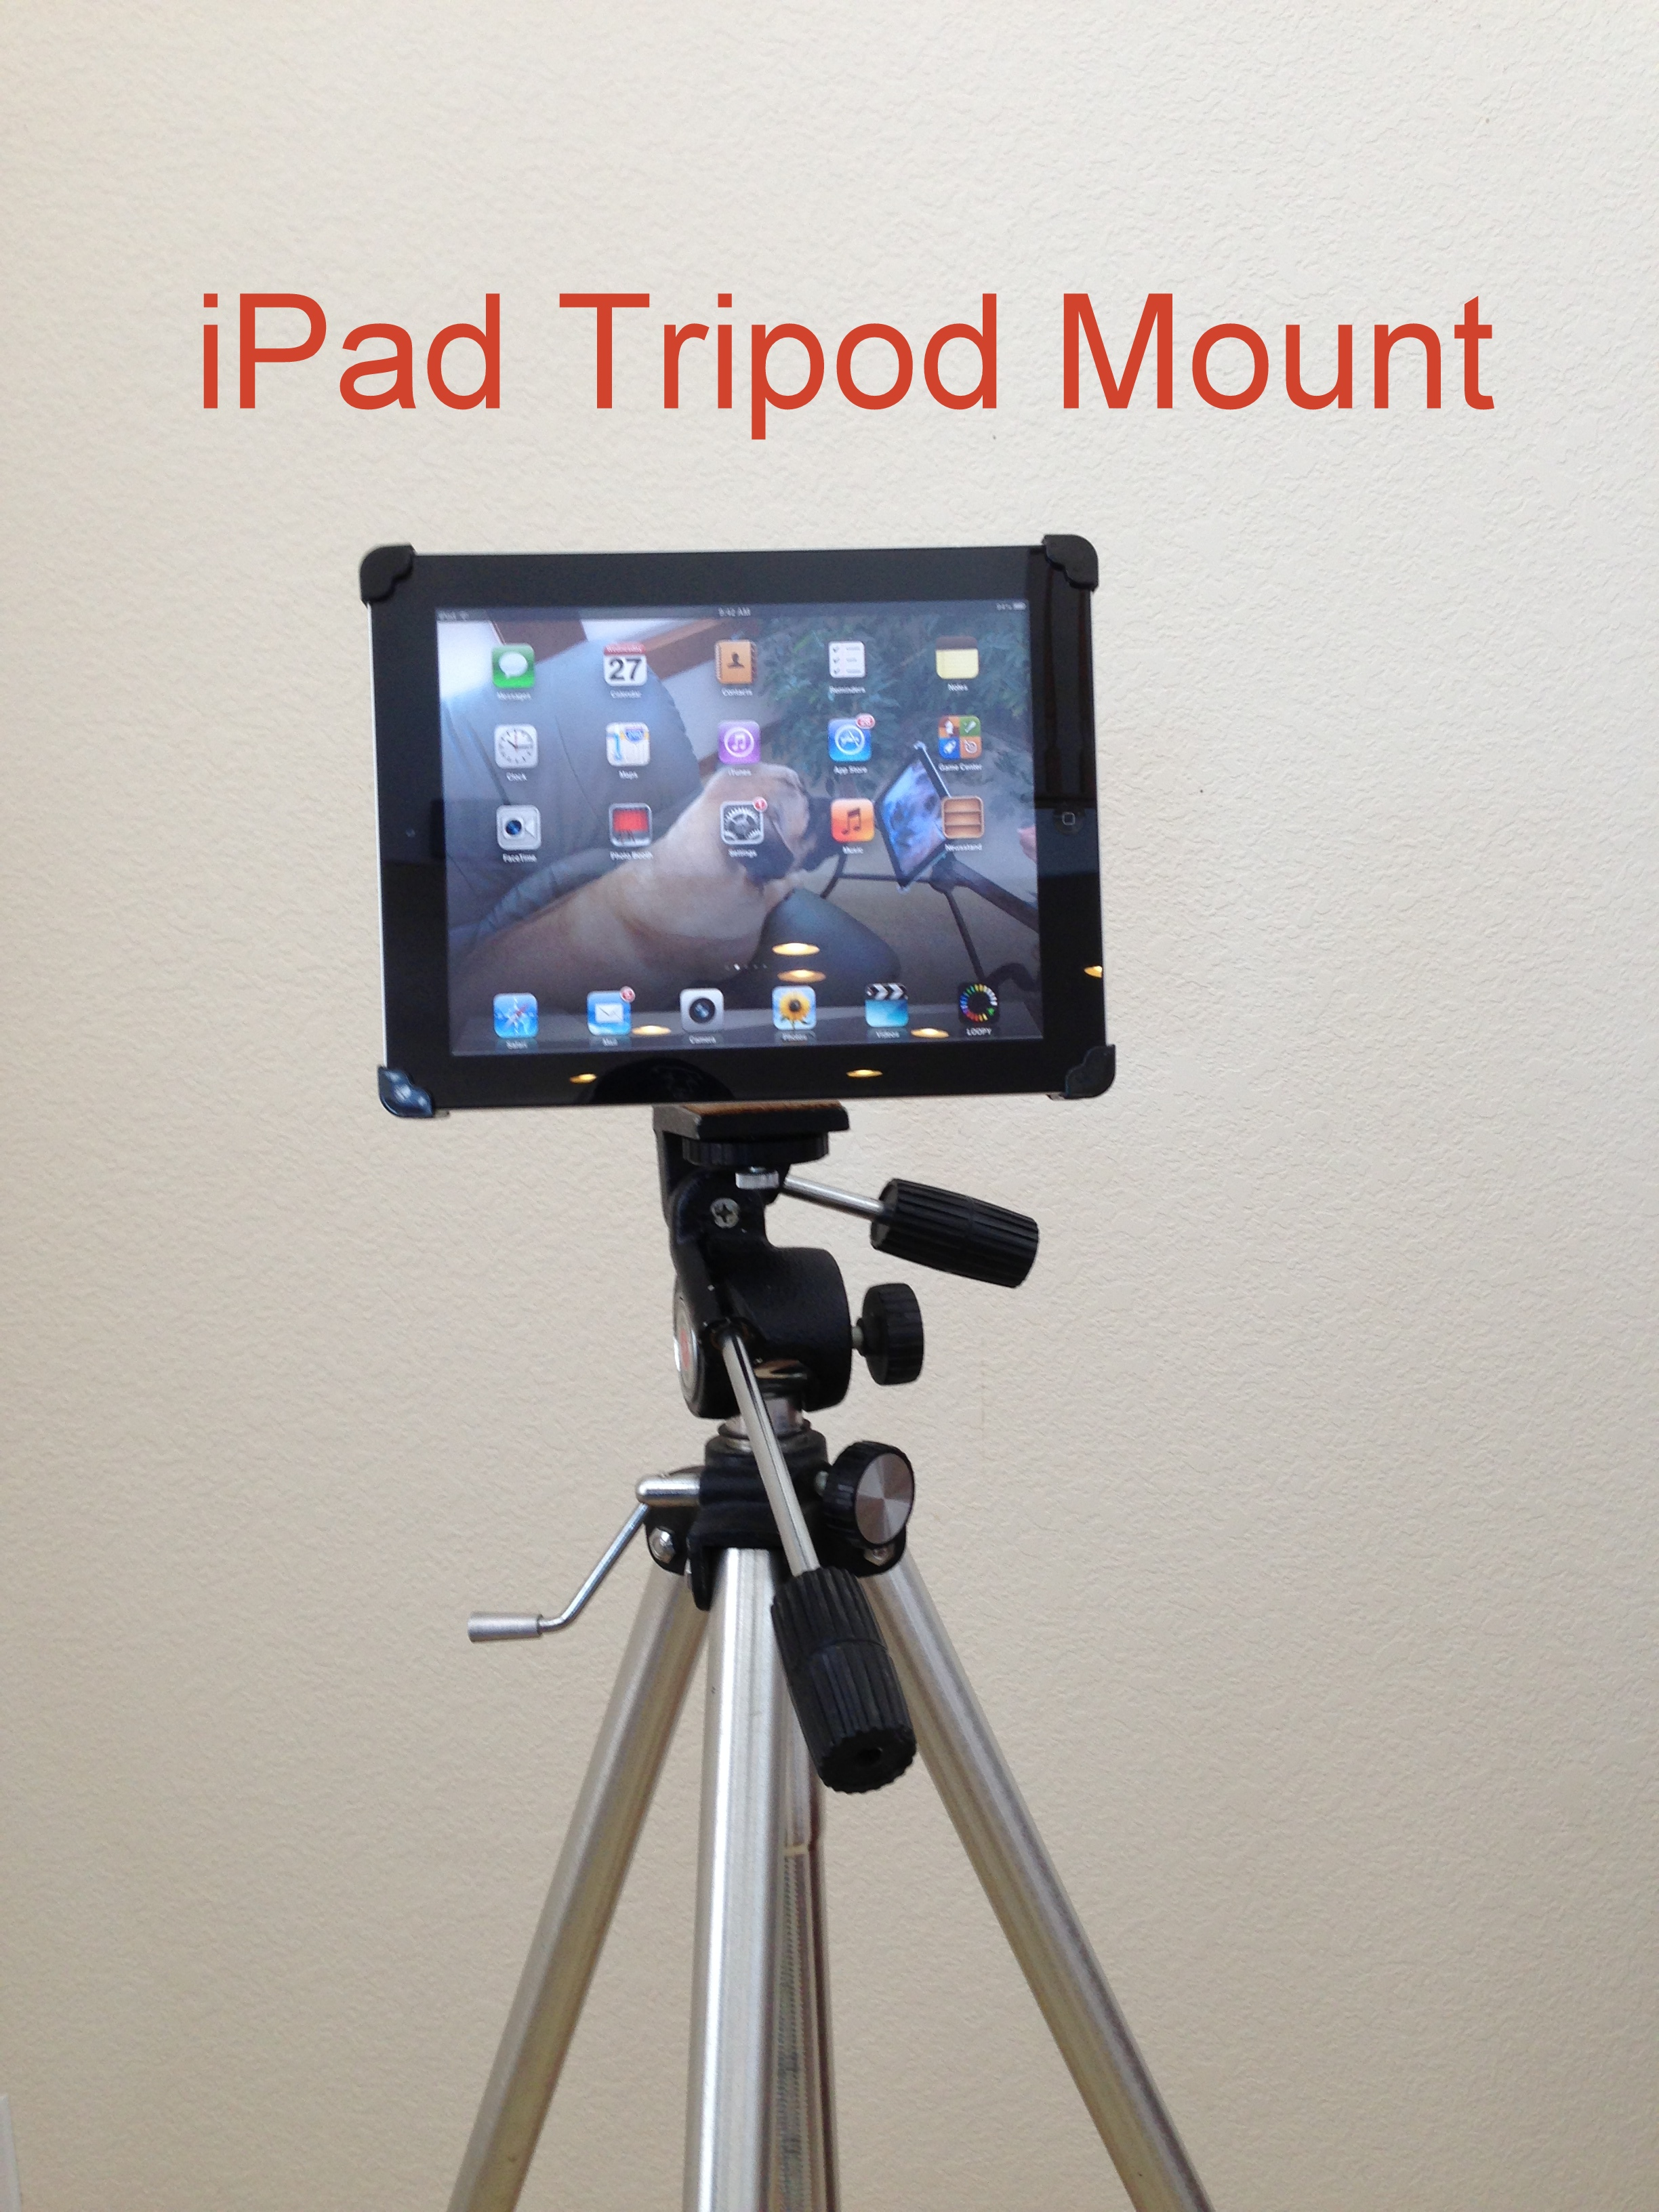 ipad-tripod-mount.jpg